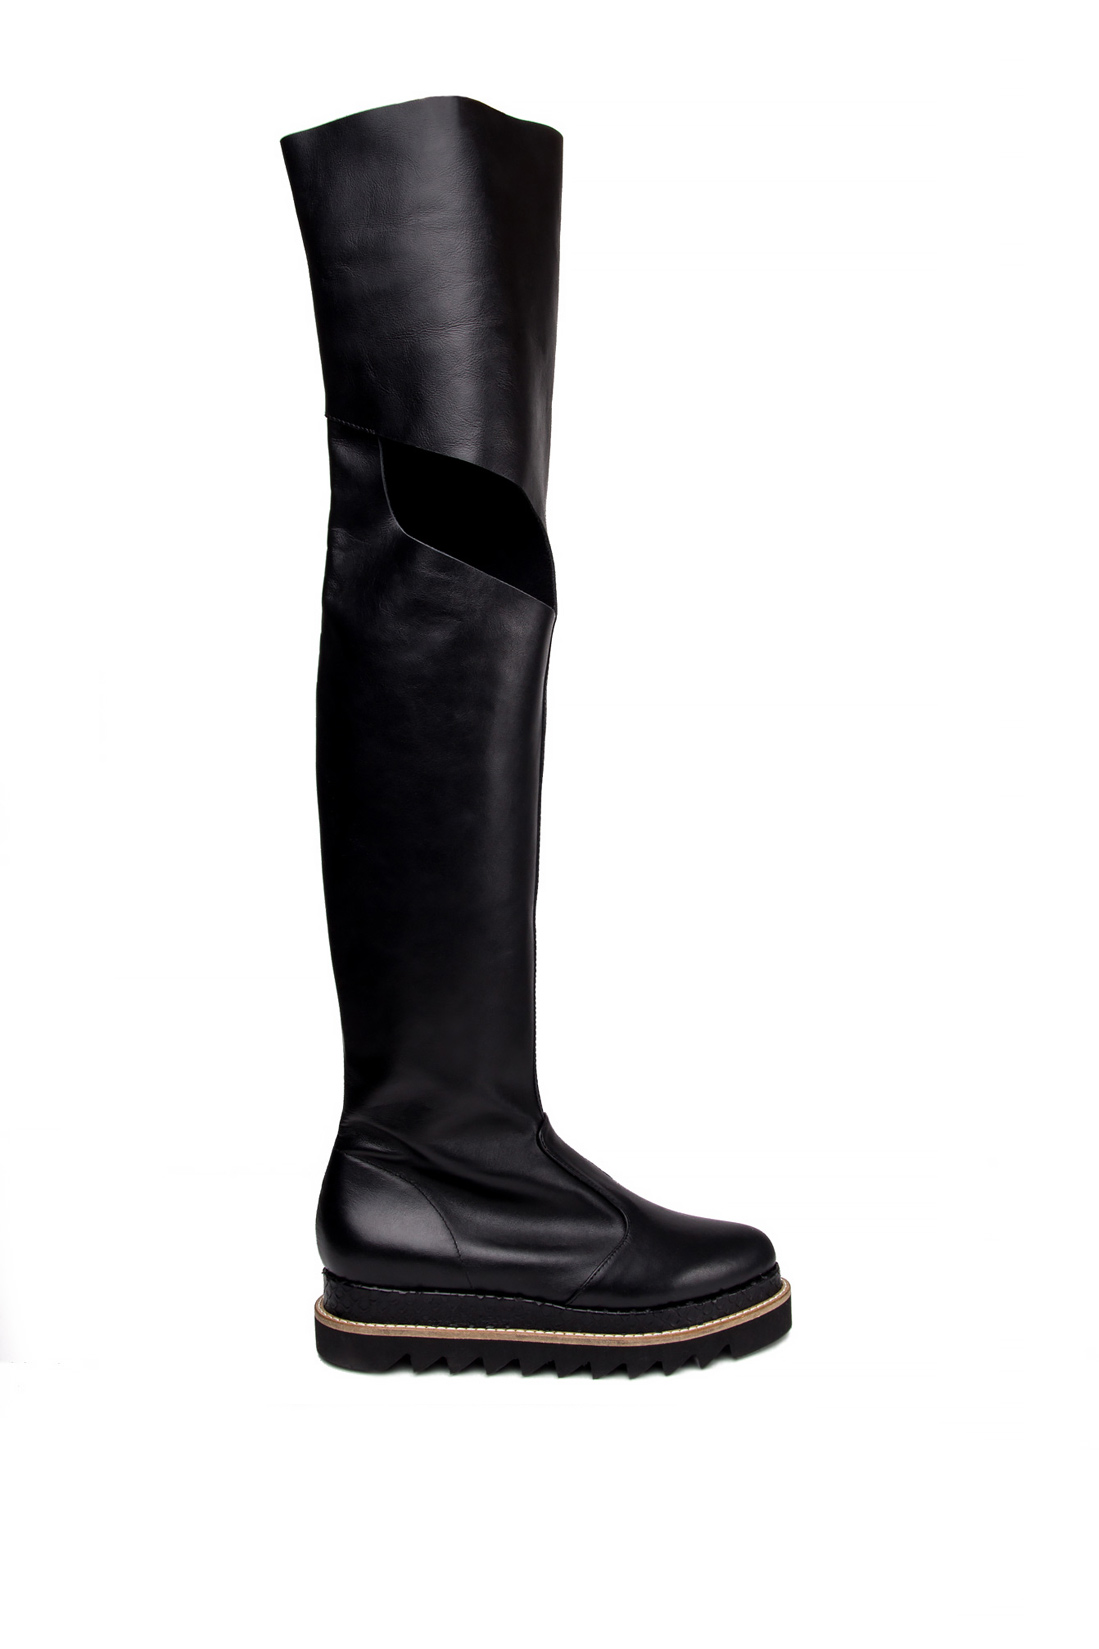 Cutout leather over-the-knee boots Mihaela Glavan  image 0